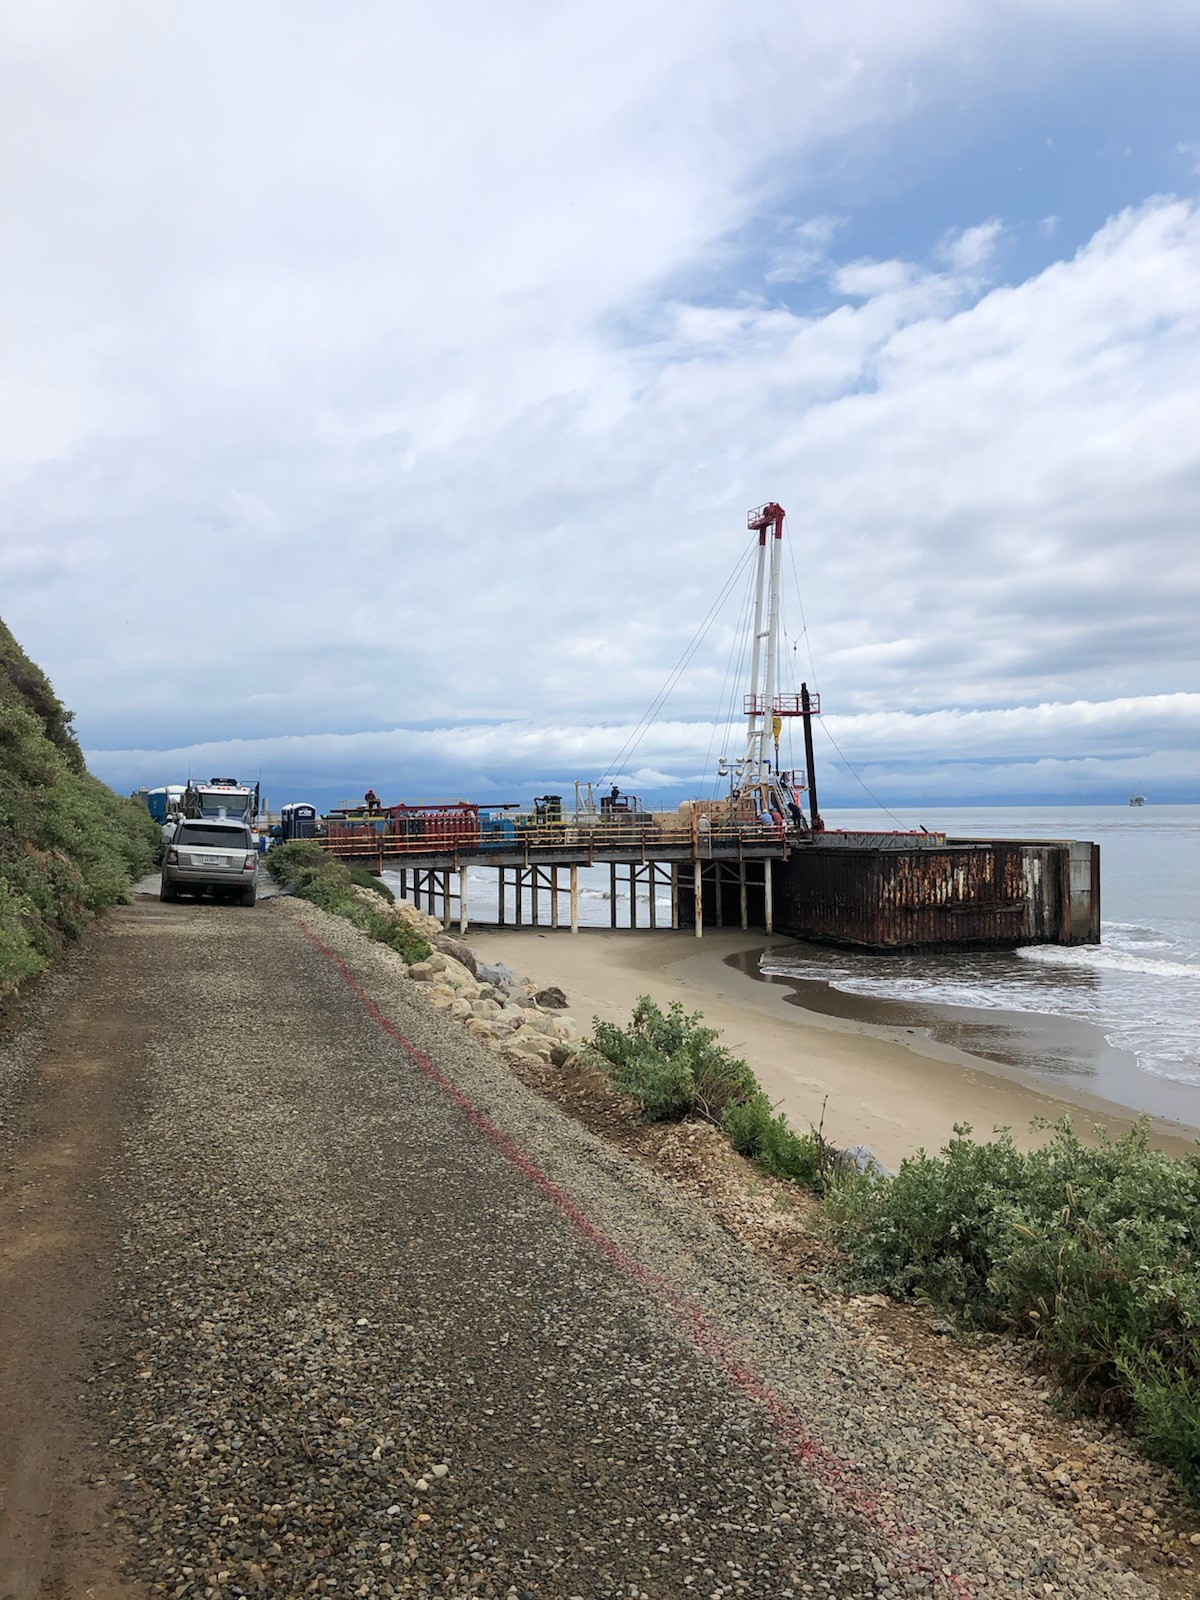 Work Continues at Haskell Beach